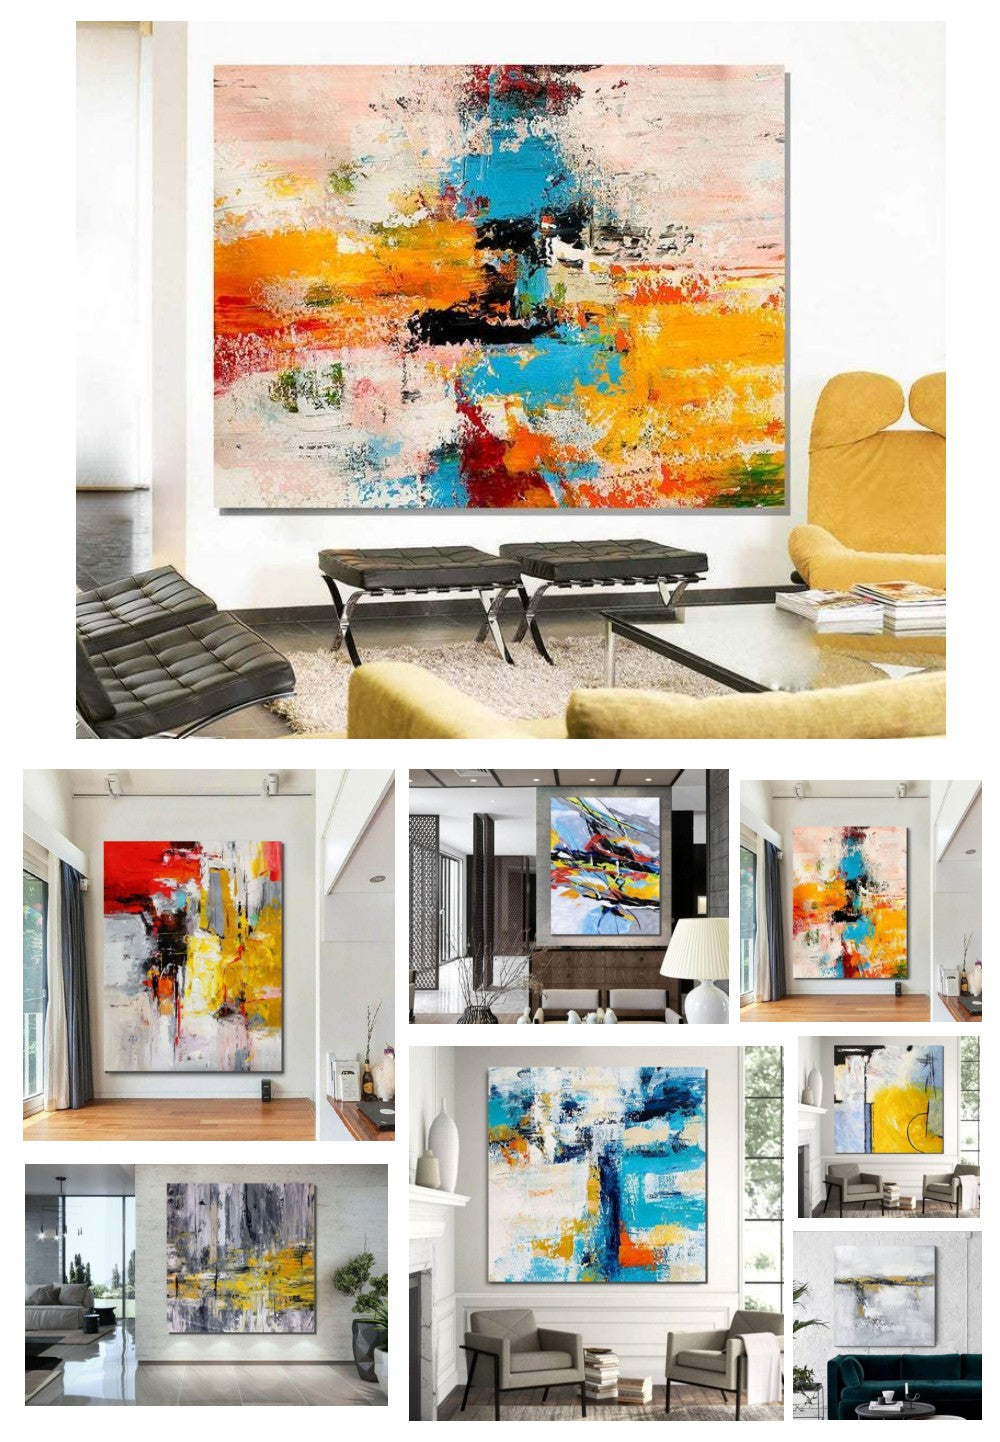 Original Hand Painted Abstract Paintings, Easy Abstract Painting on Canvas, Simple Acrylic Painting for Bedroom